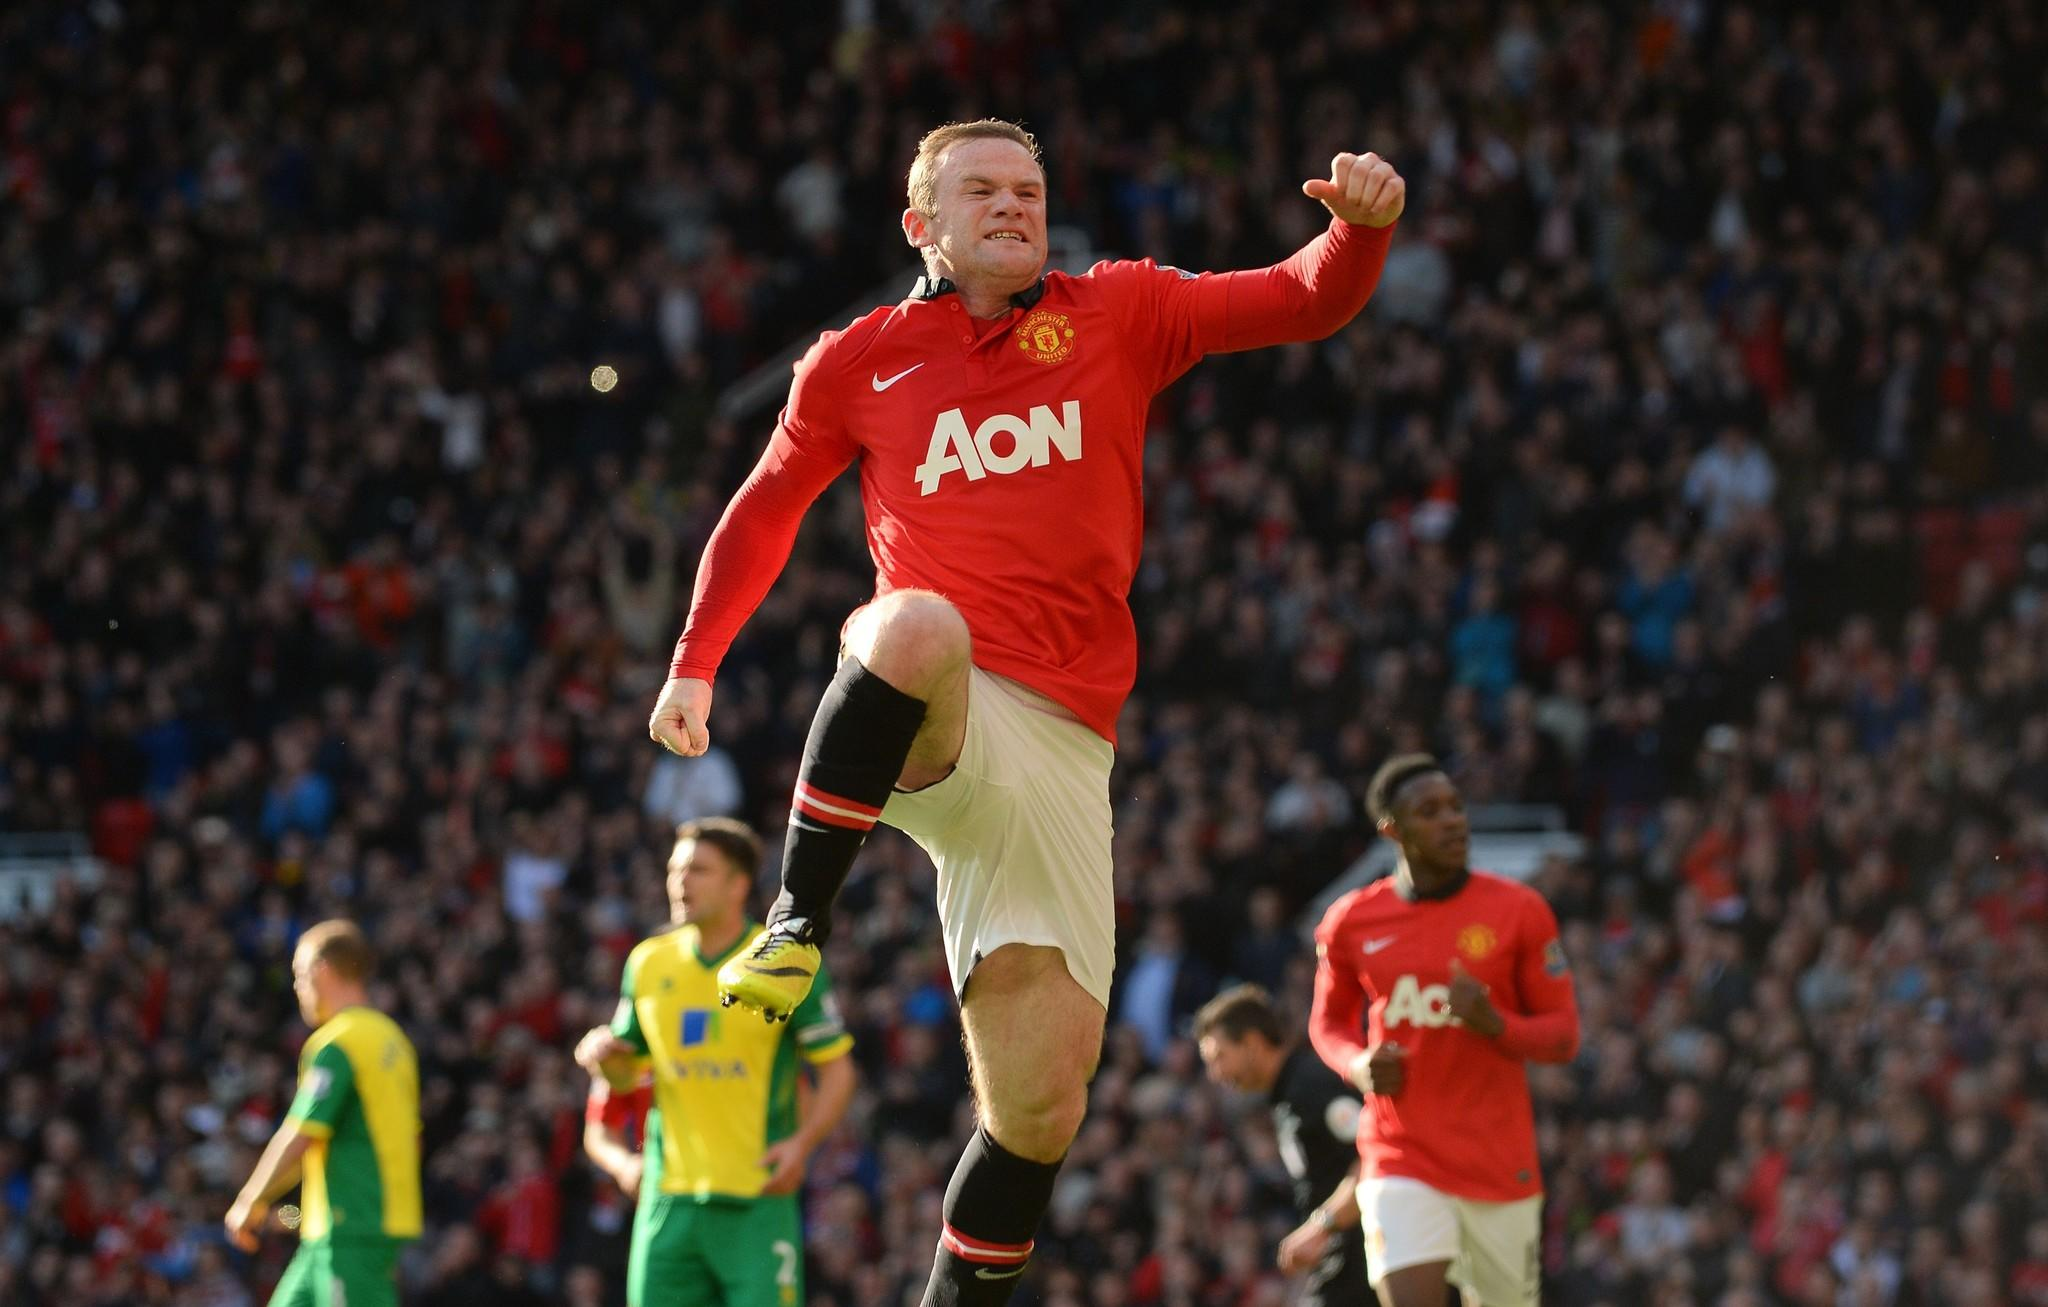 Manchester United's English striker Wayne Rooney celebrates after scoring a penalty during the English Premier League football match between Manchester United and Norwich City at Old Trafford in Manchester, northwest England, on April 26, 2014.